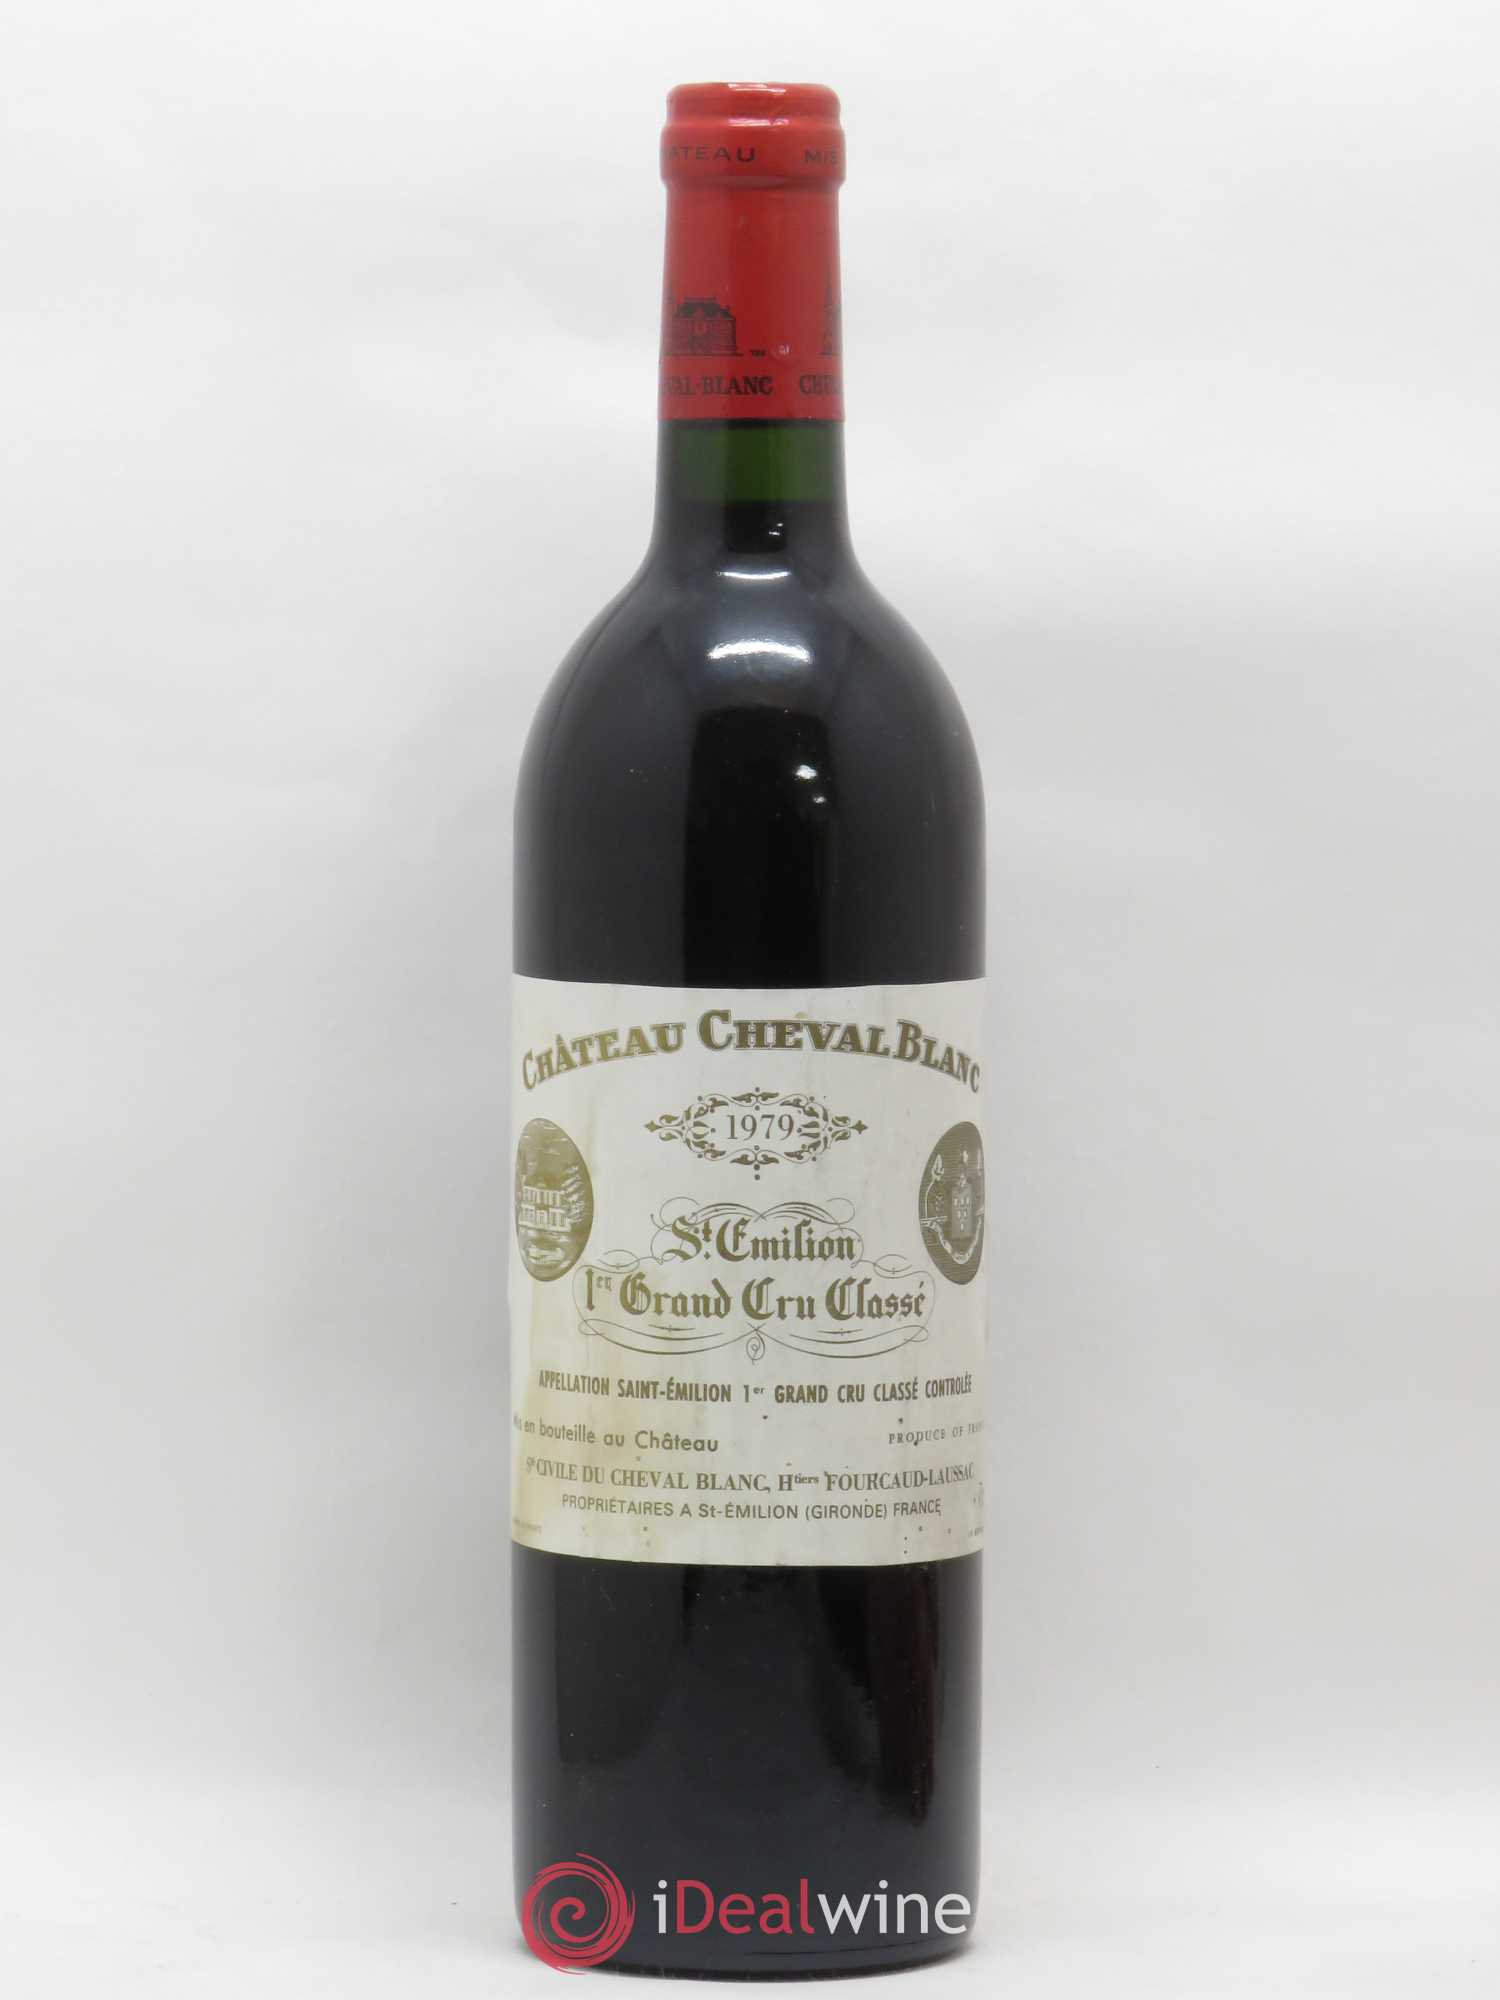 Château Cheval Blanc 1er Grand Cru Classé A  1979 - Lot of 1 Bottle